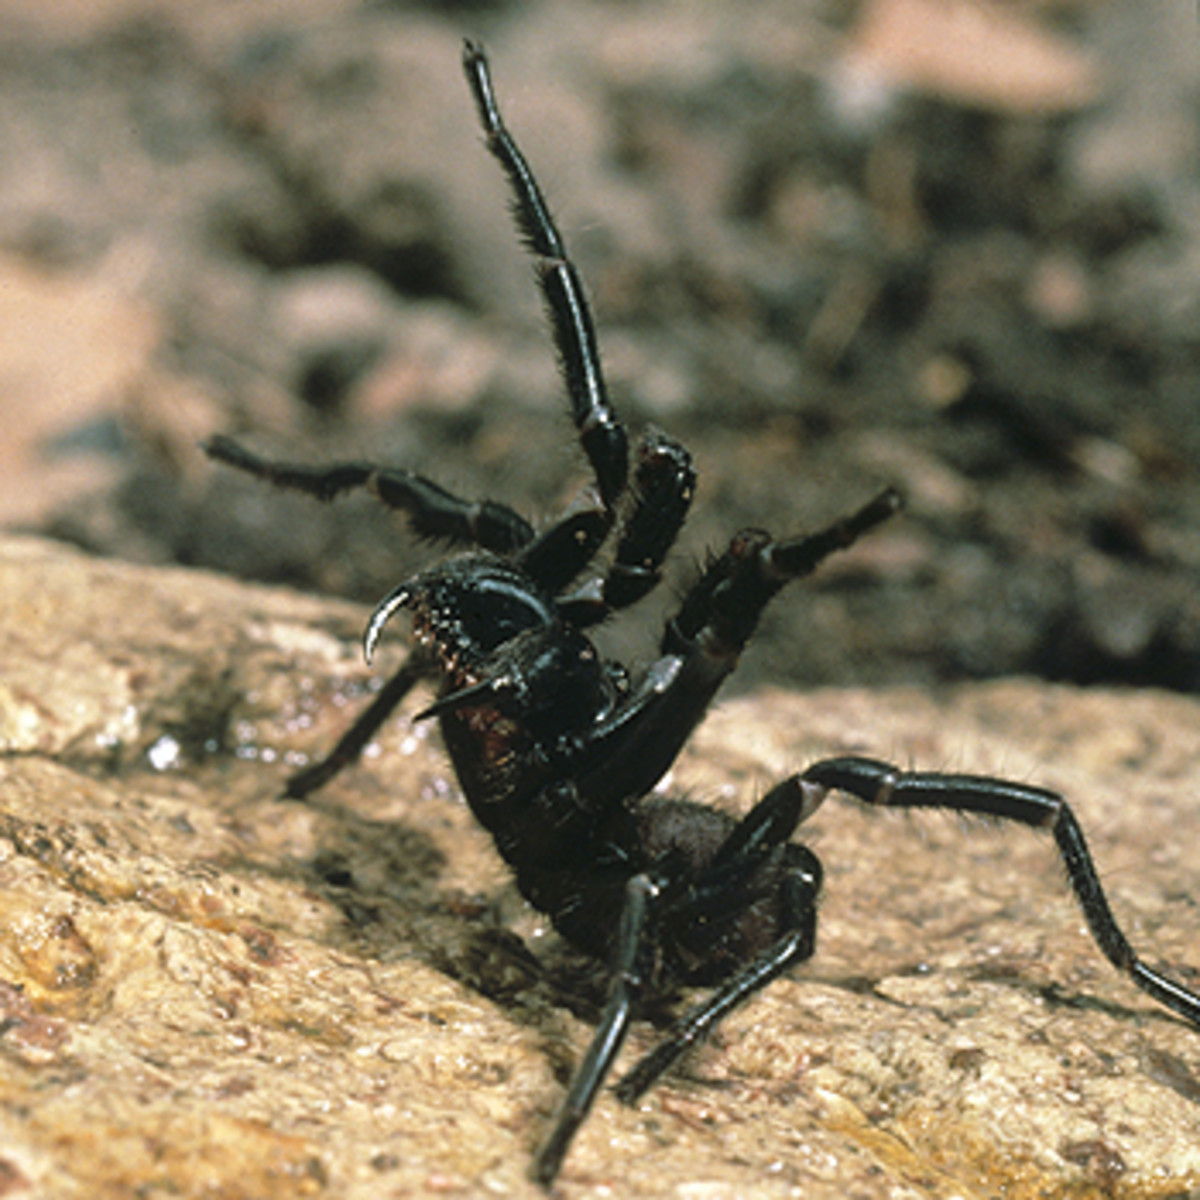 Australia, Poisonous and Venomous Spiders, Snakes and Insects